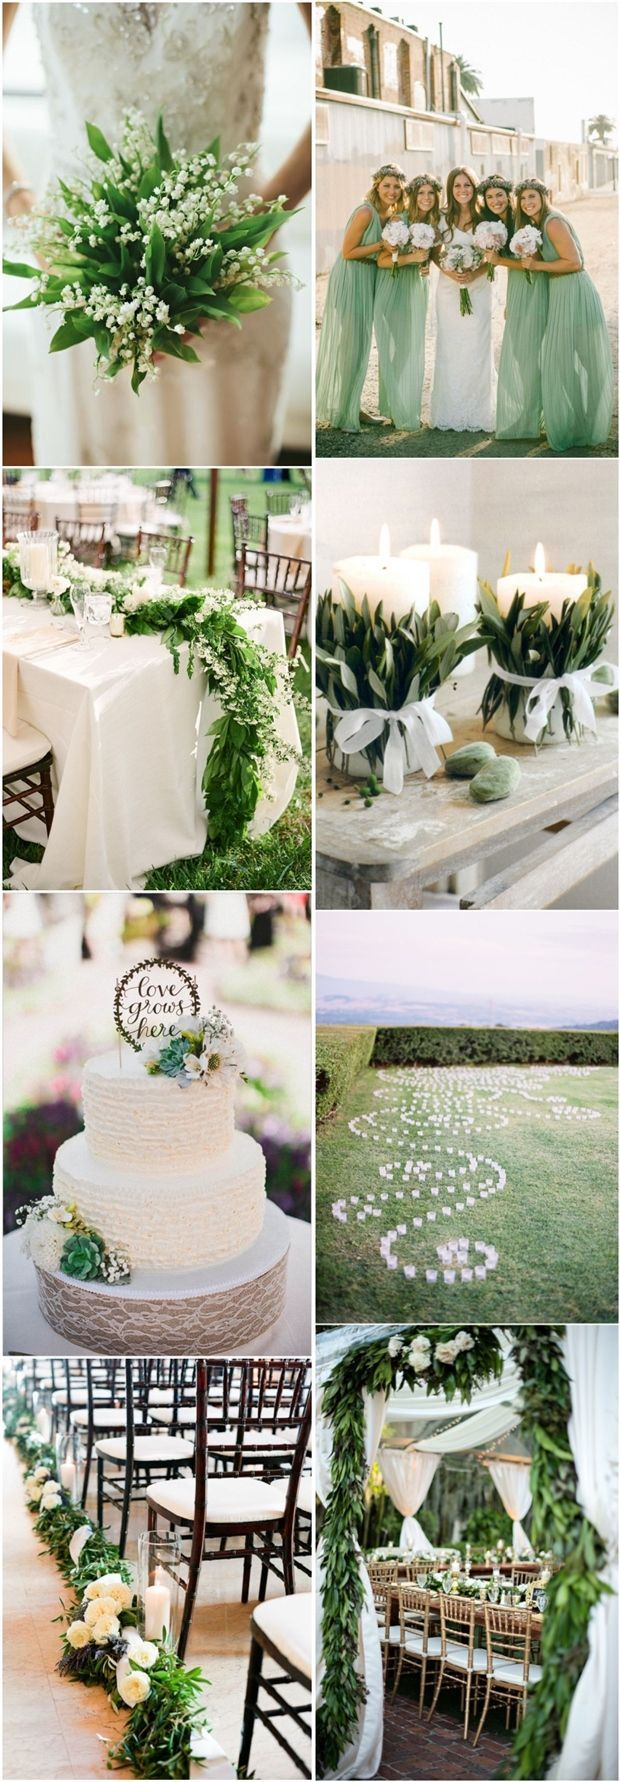 The Top 8 Wedding Shades – Which Color Do You Want?  http://www.mineforeverapp.com/blog/2015/09/05/the-top-8-wedding-shades-which-color-do-you-want/ #wedding #weddingideas #weddinginspiration